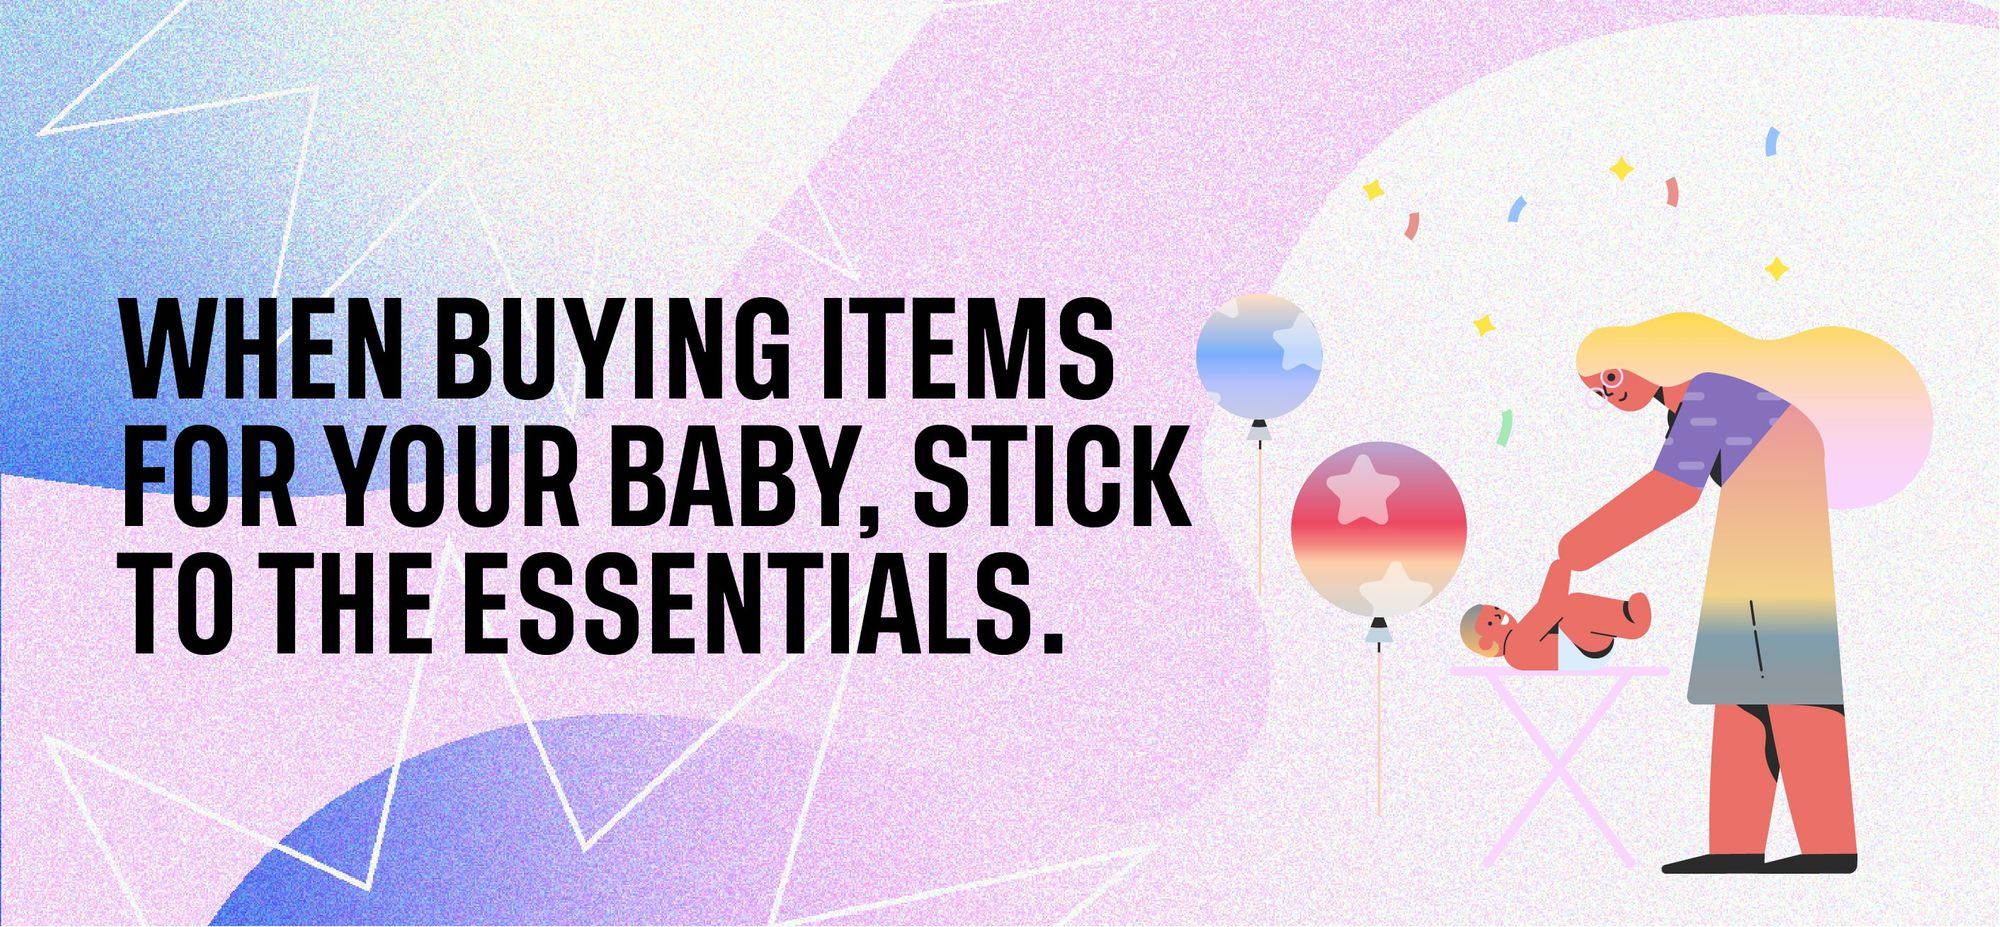 When buying items for your baby, stick to the essentials.